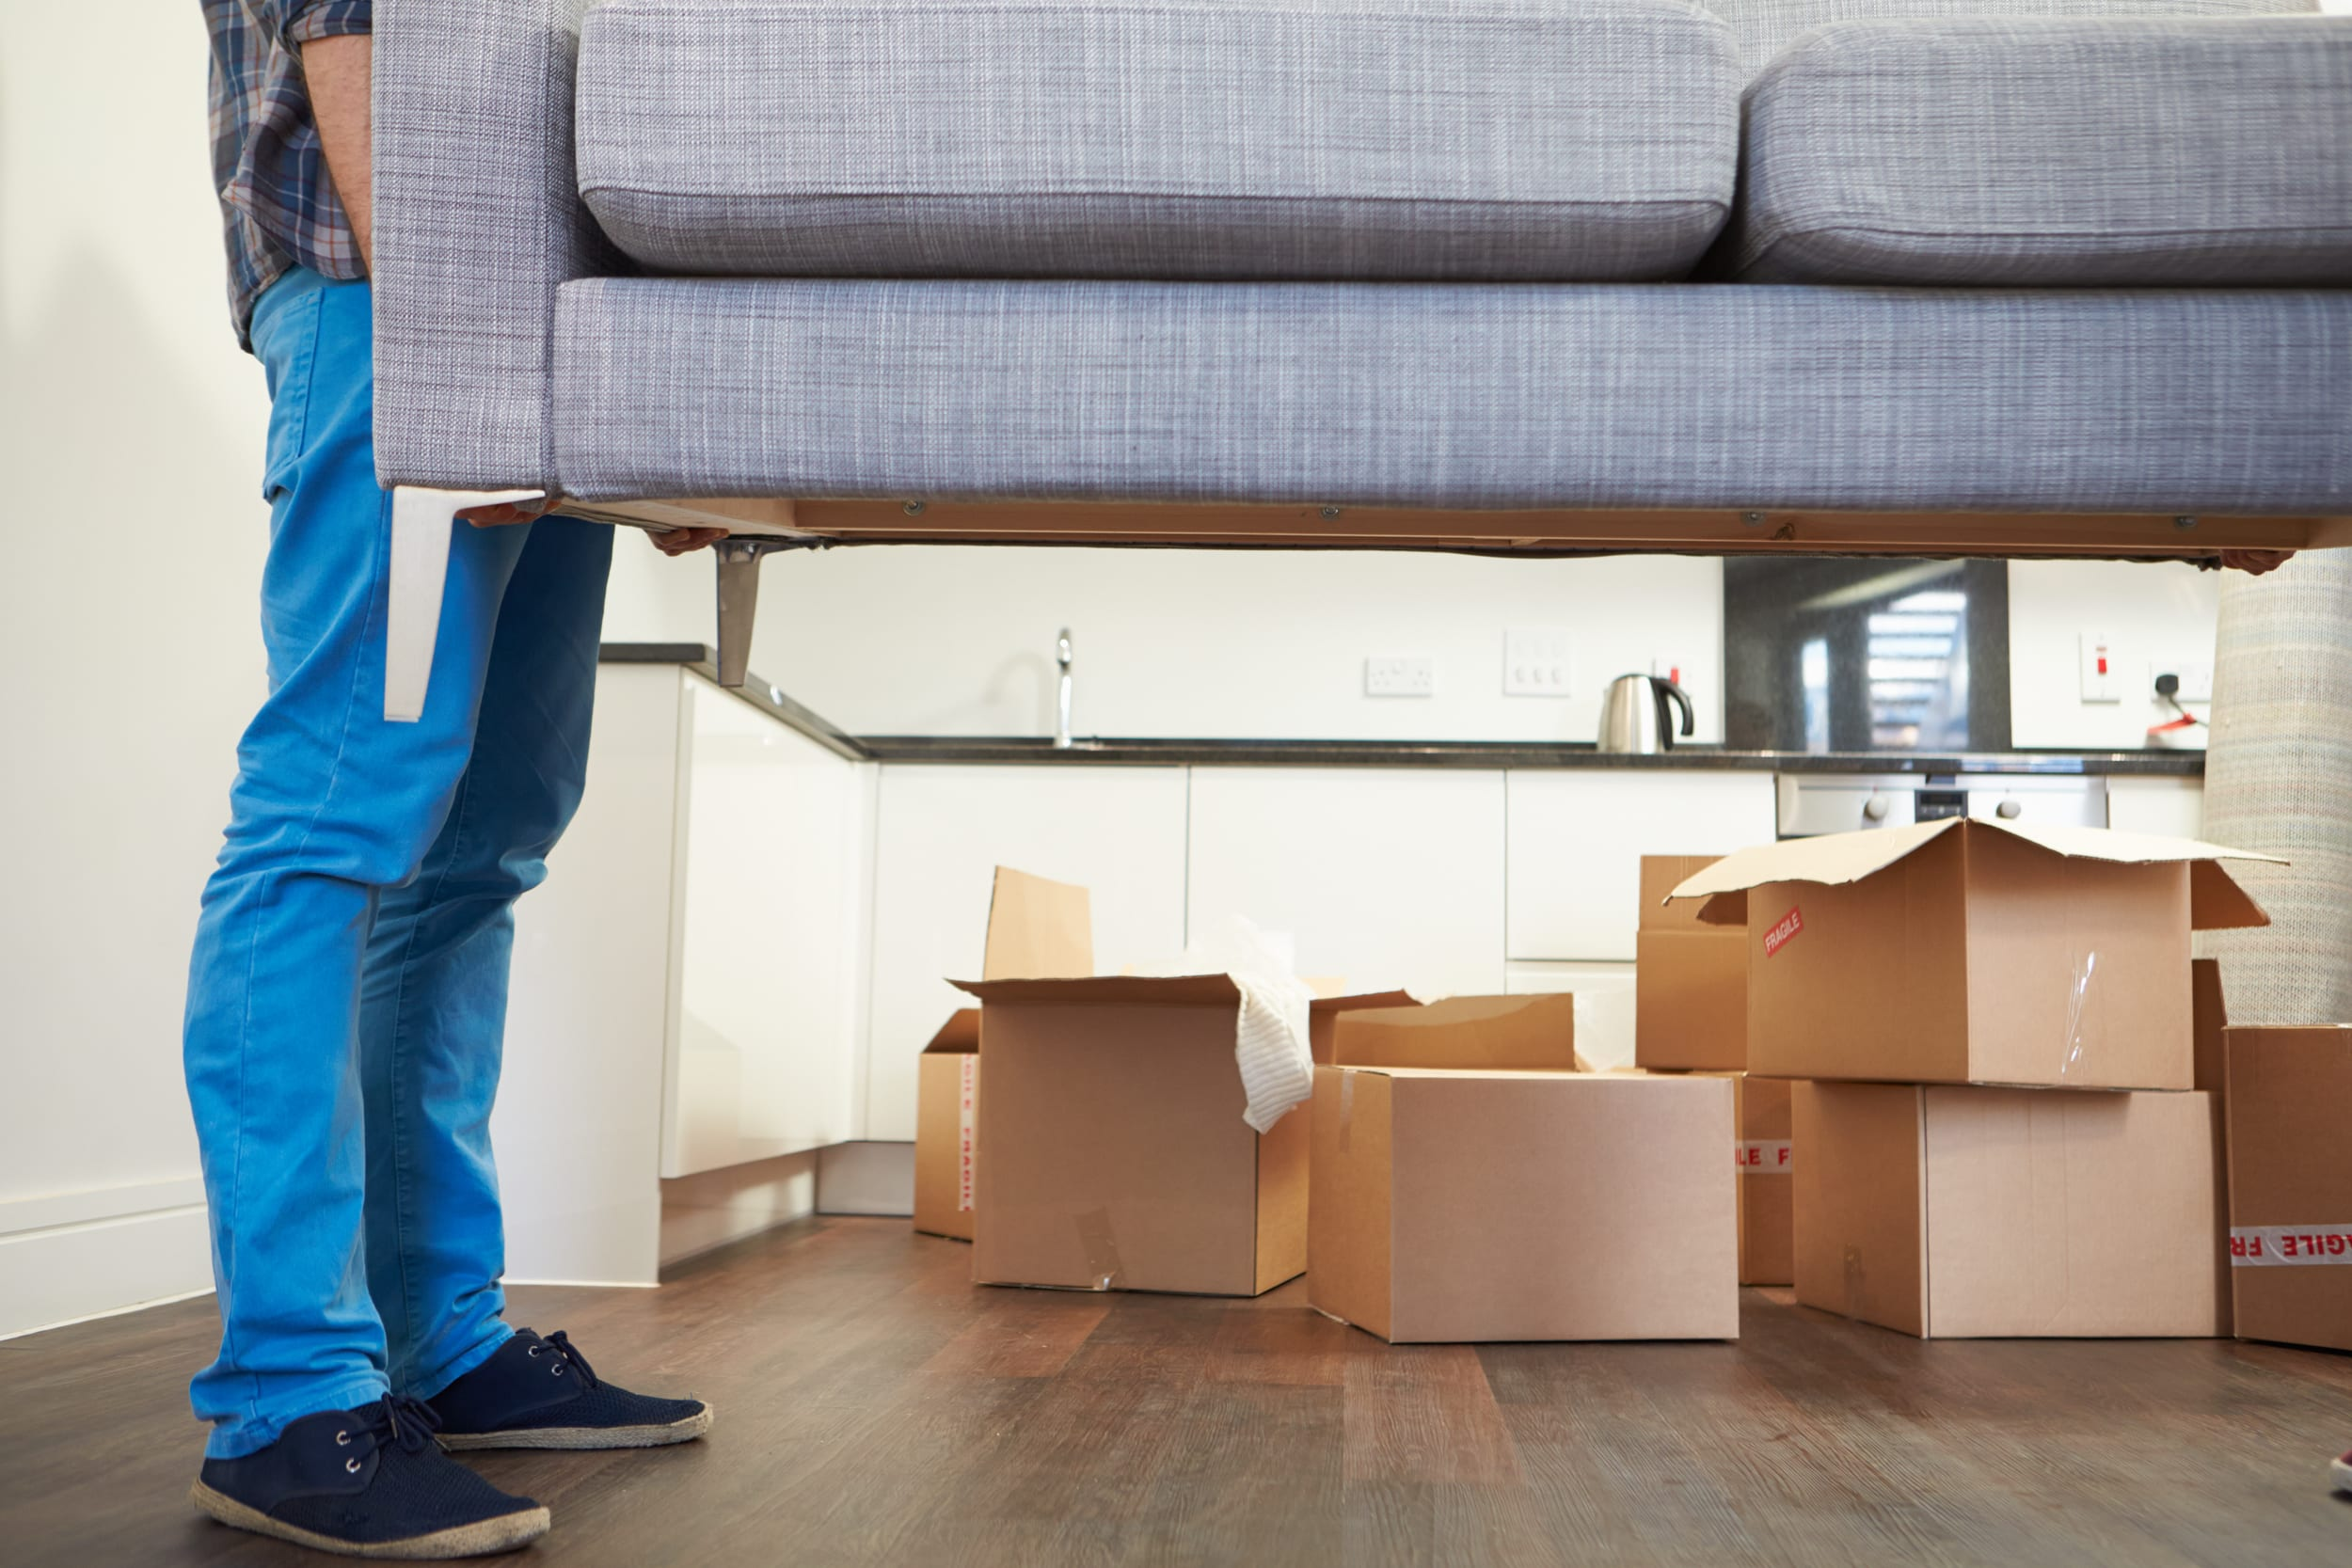 How to Avoid Damage During Your Move